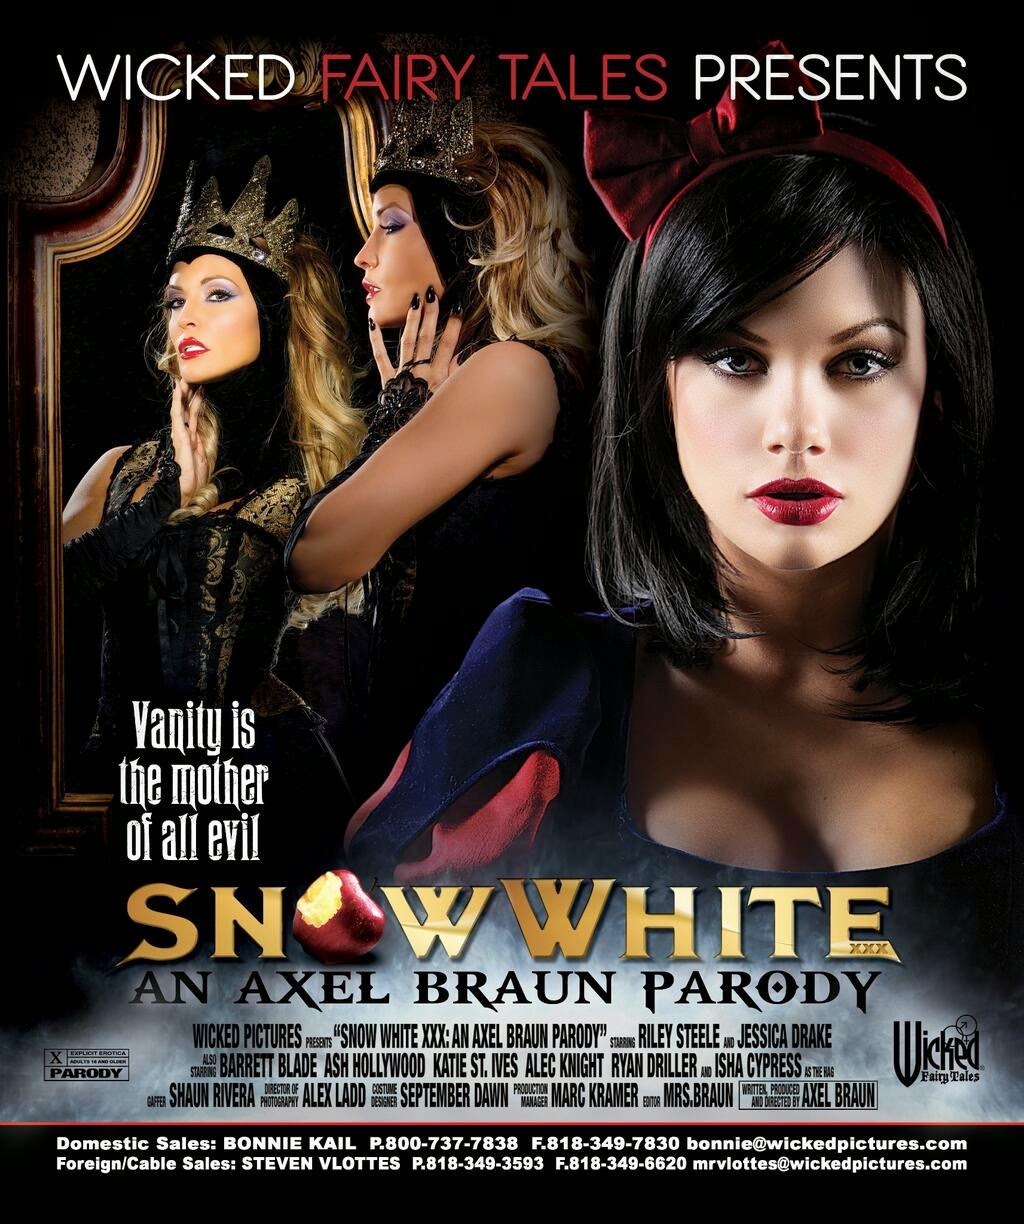 Fairytale-inspired porn movies, including Snow White and Cinderella